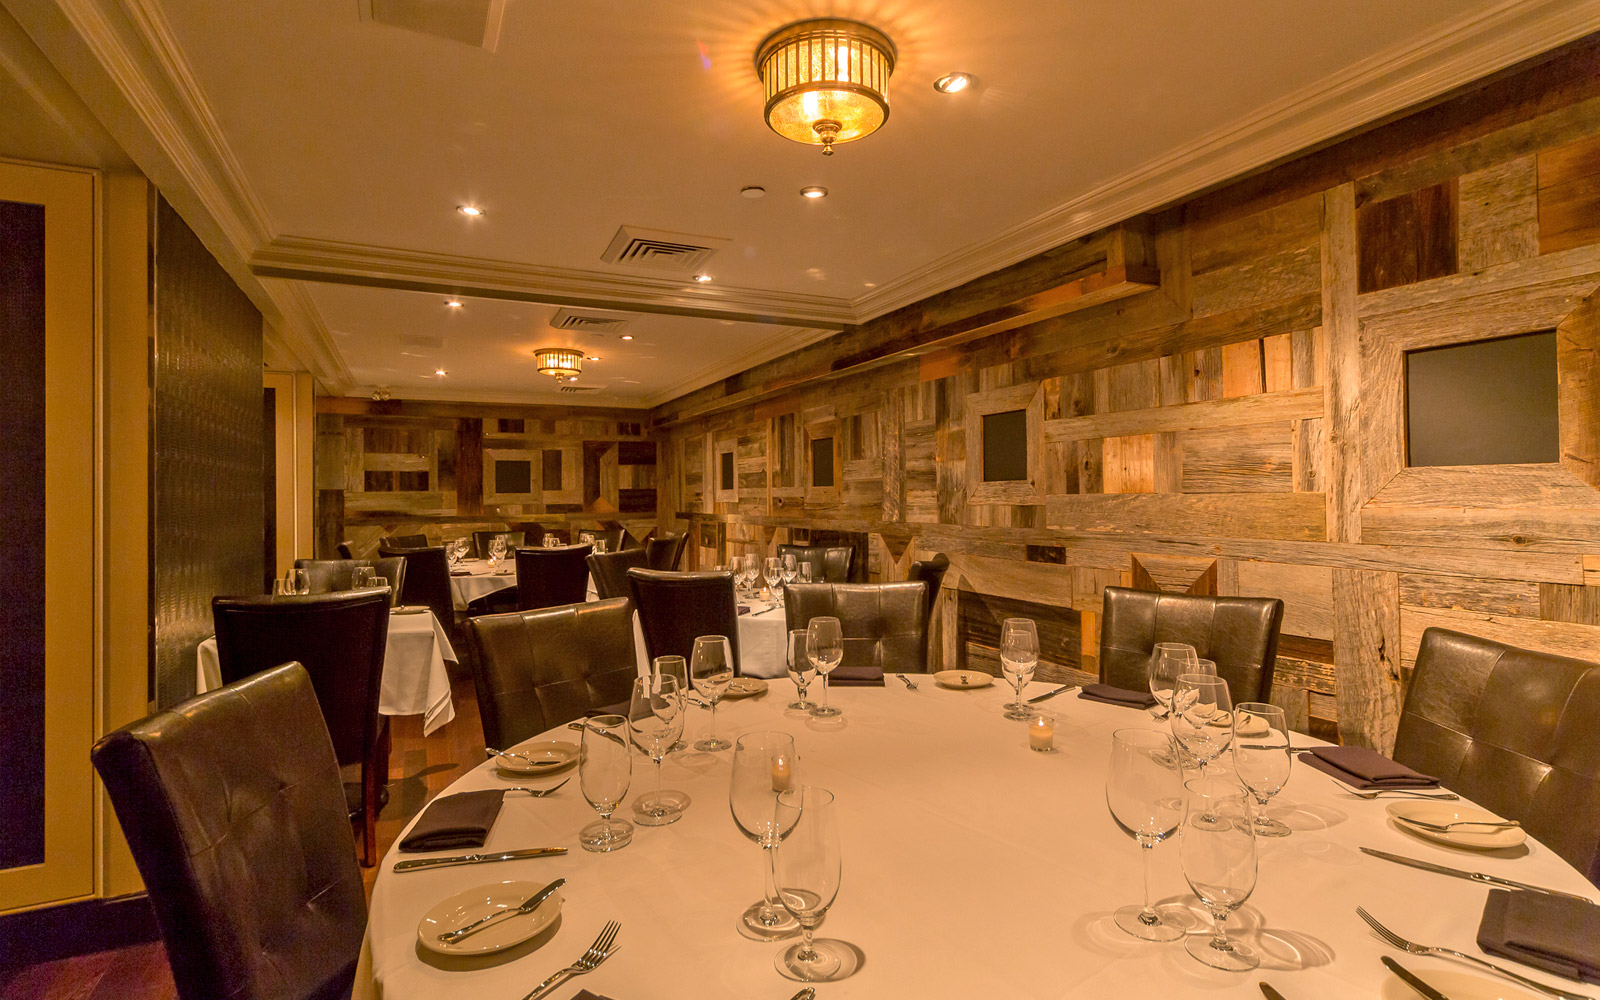 Photo #5 Cork Room at Angus Club Steakhouse